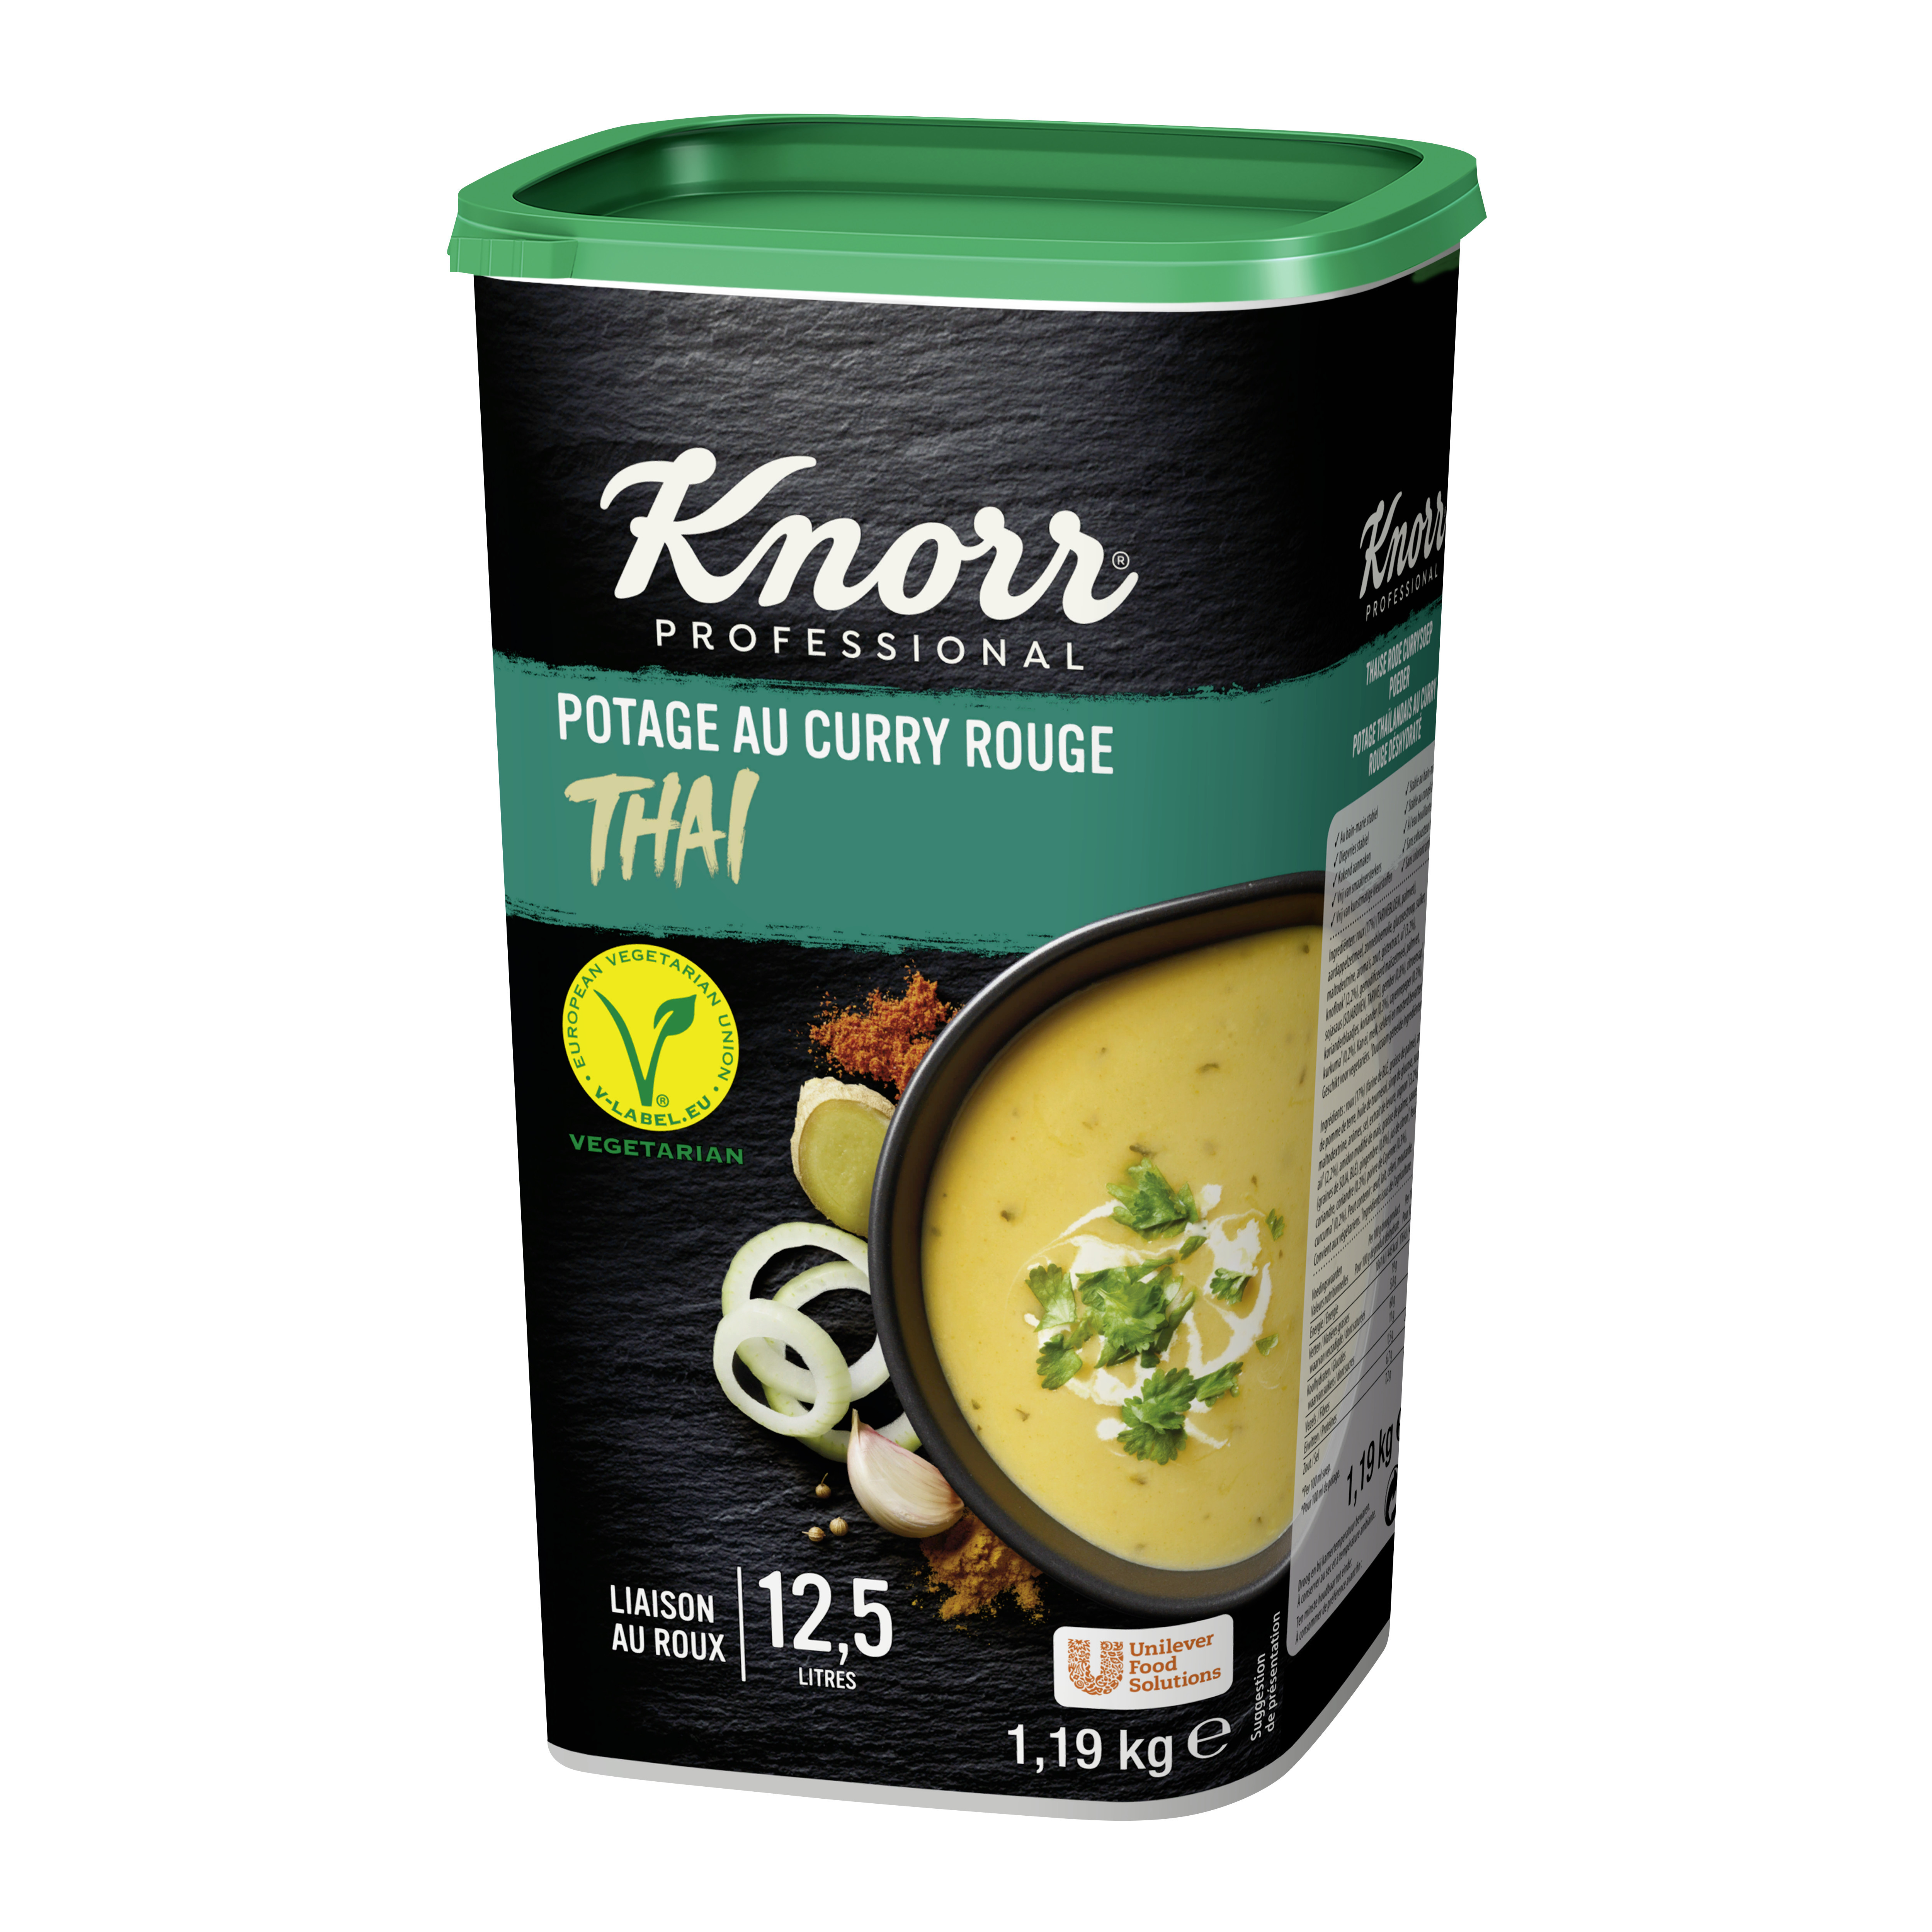 Knorr potage Thai Curry Rouge 1.19Kg Professional